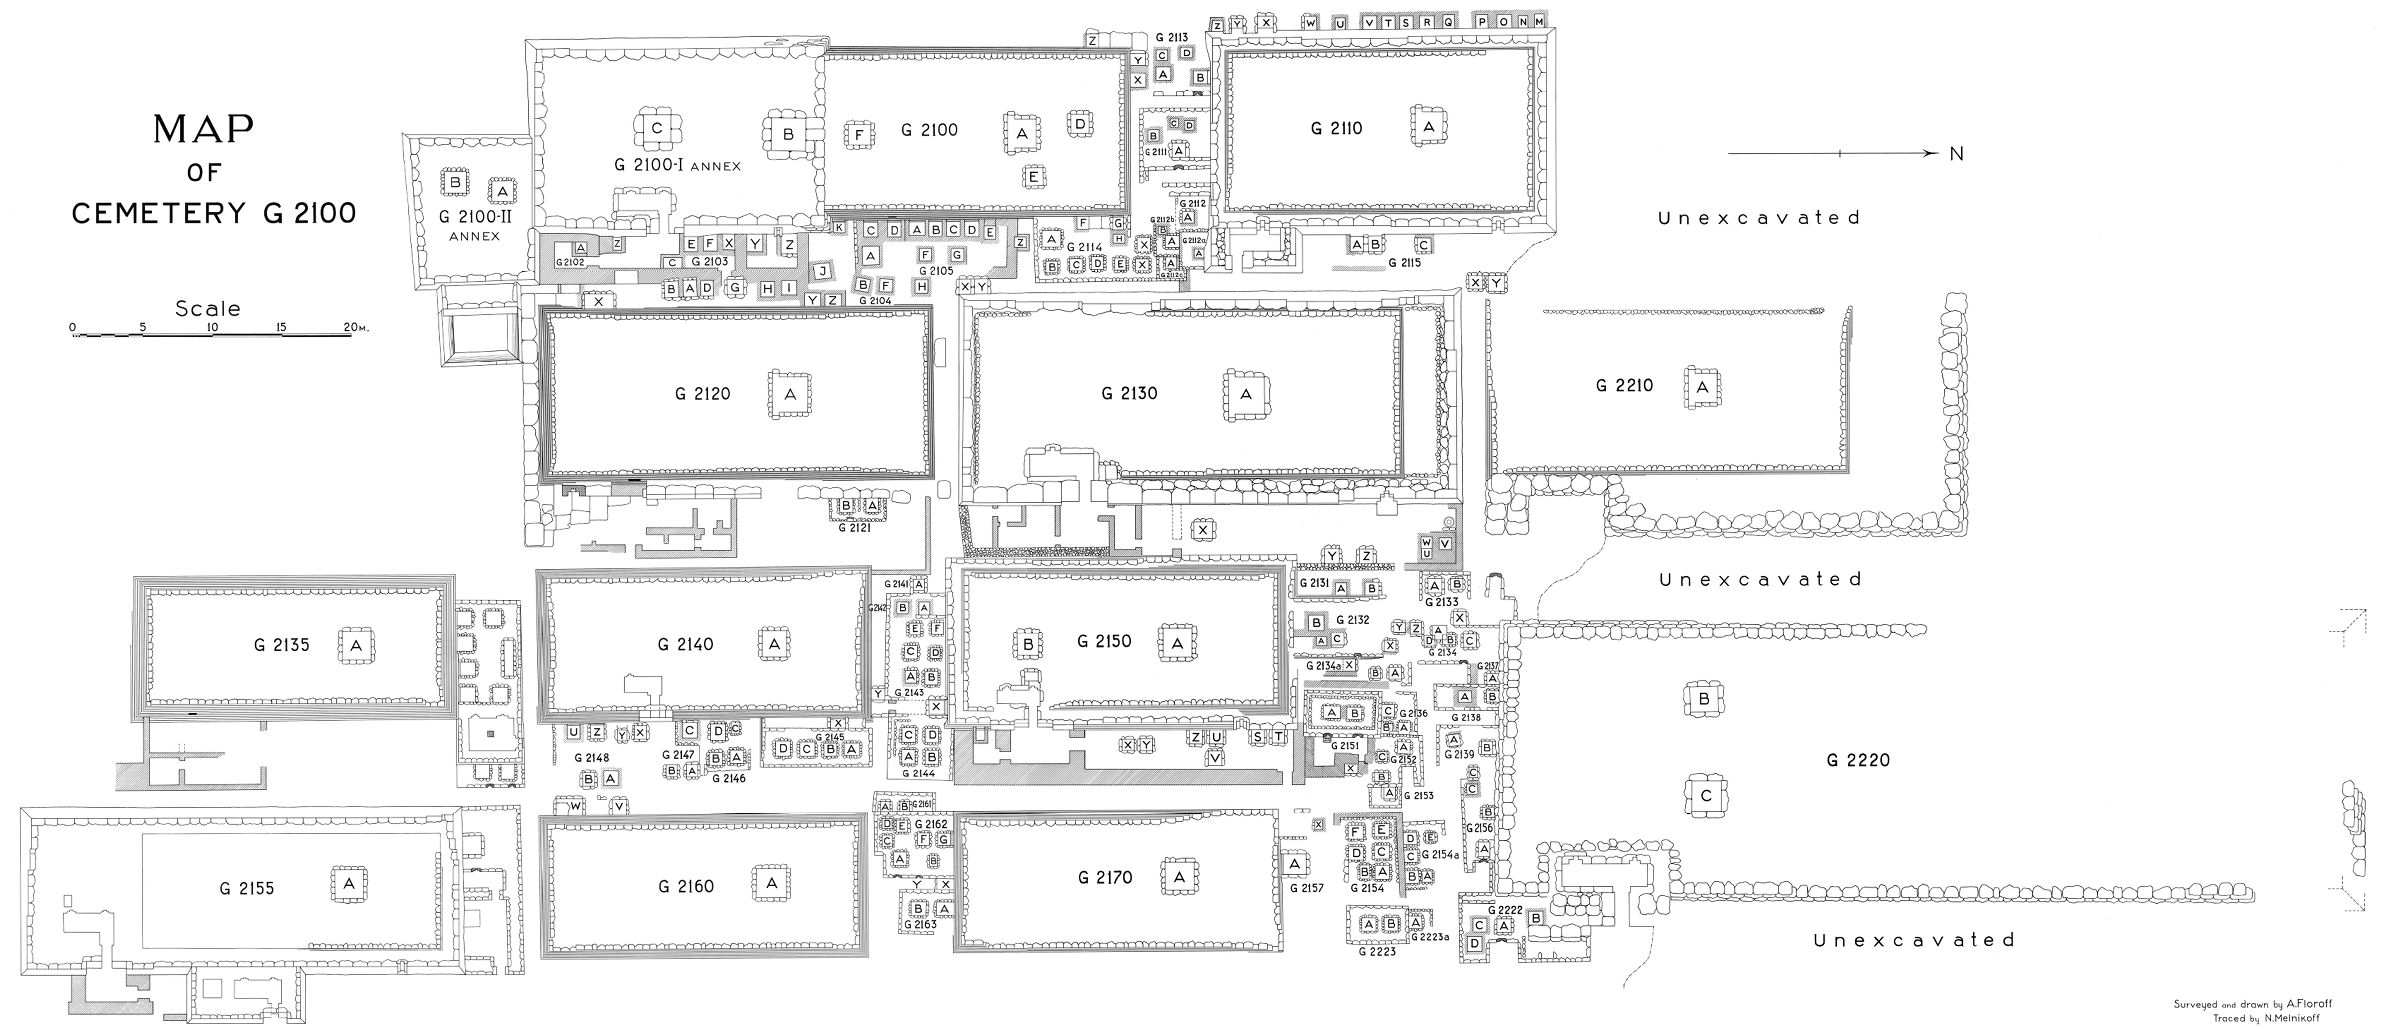 Maps and plans: Plan of Cemetery G 2100